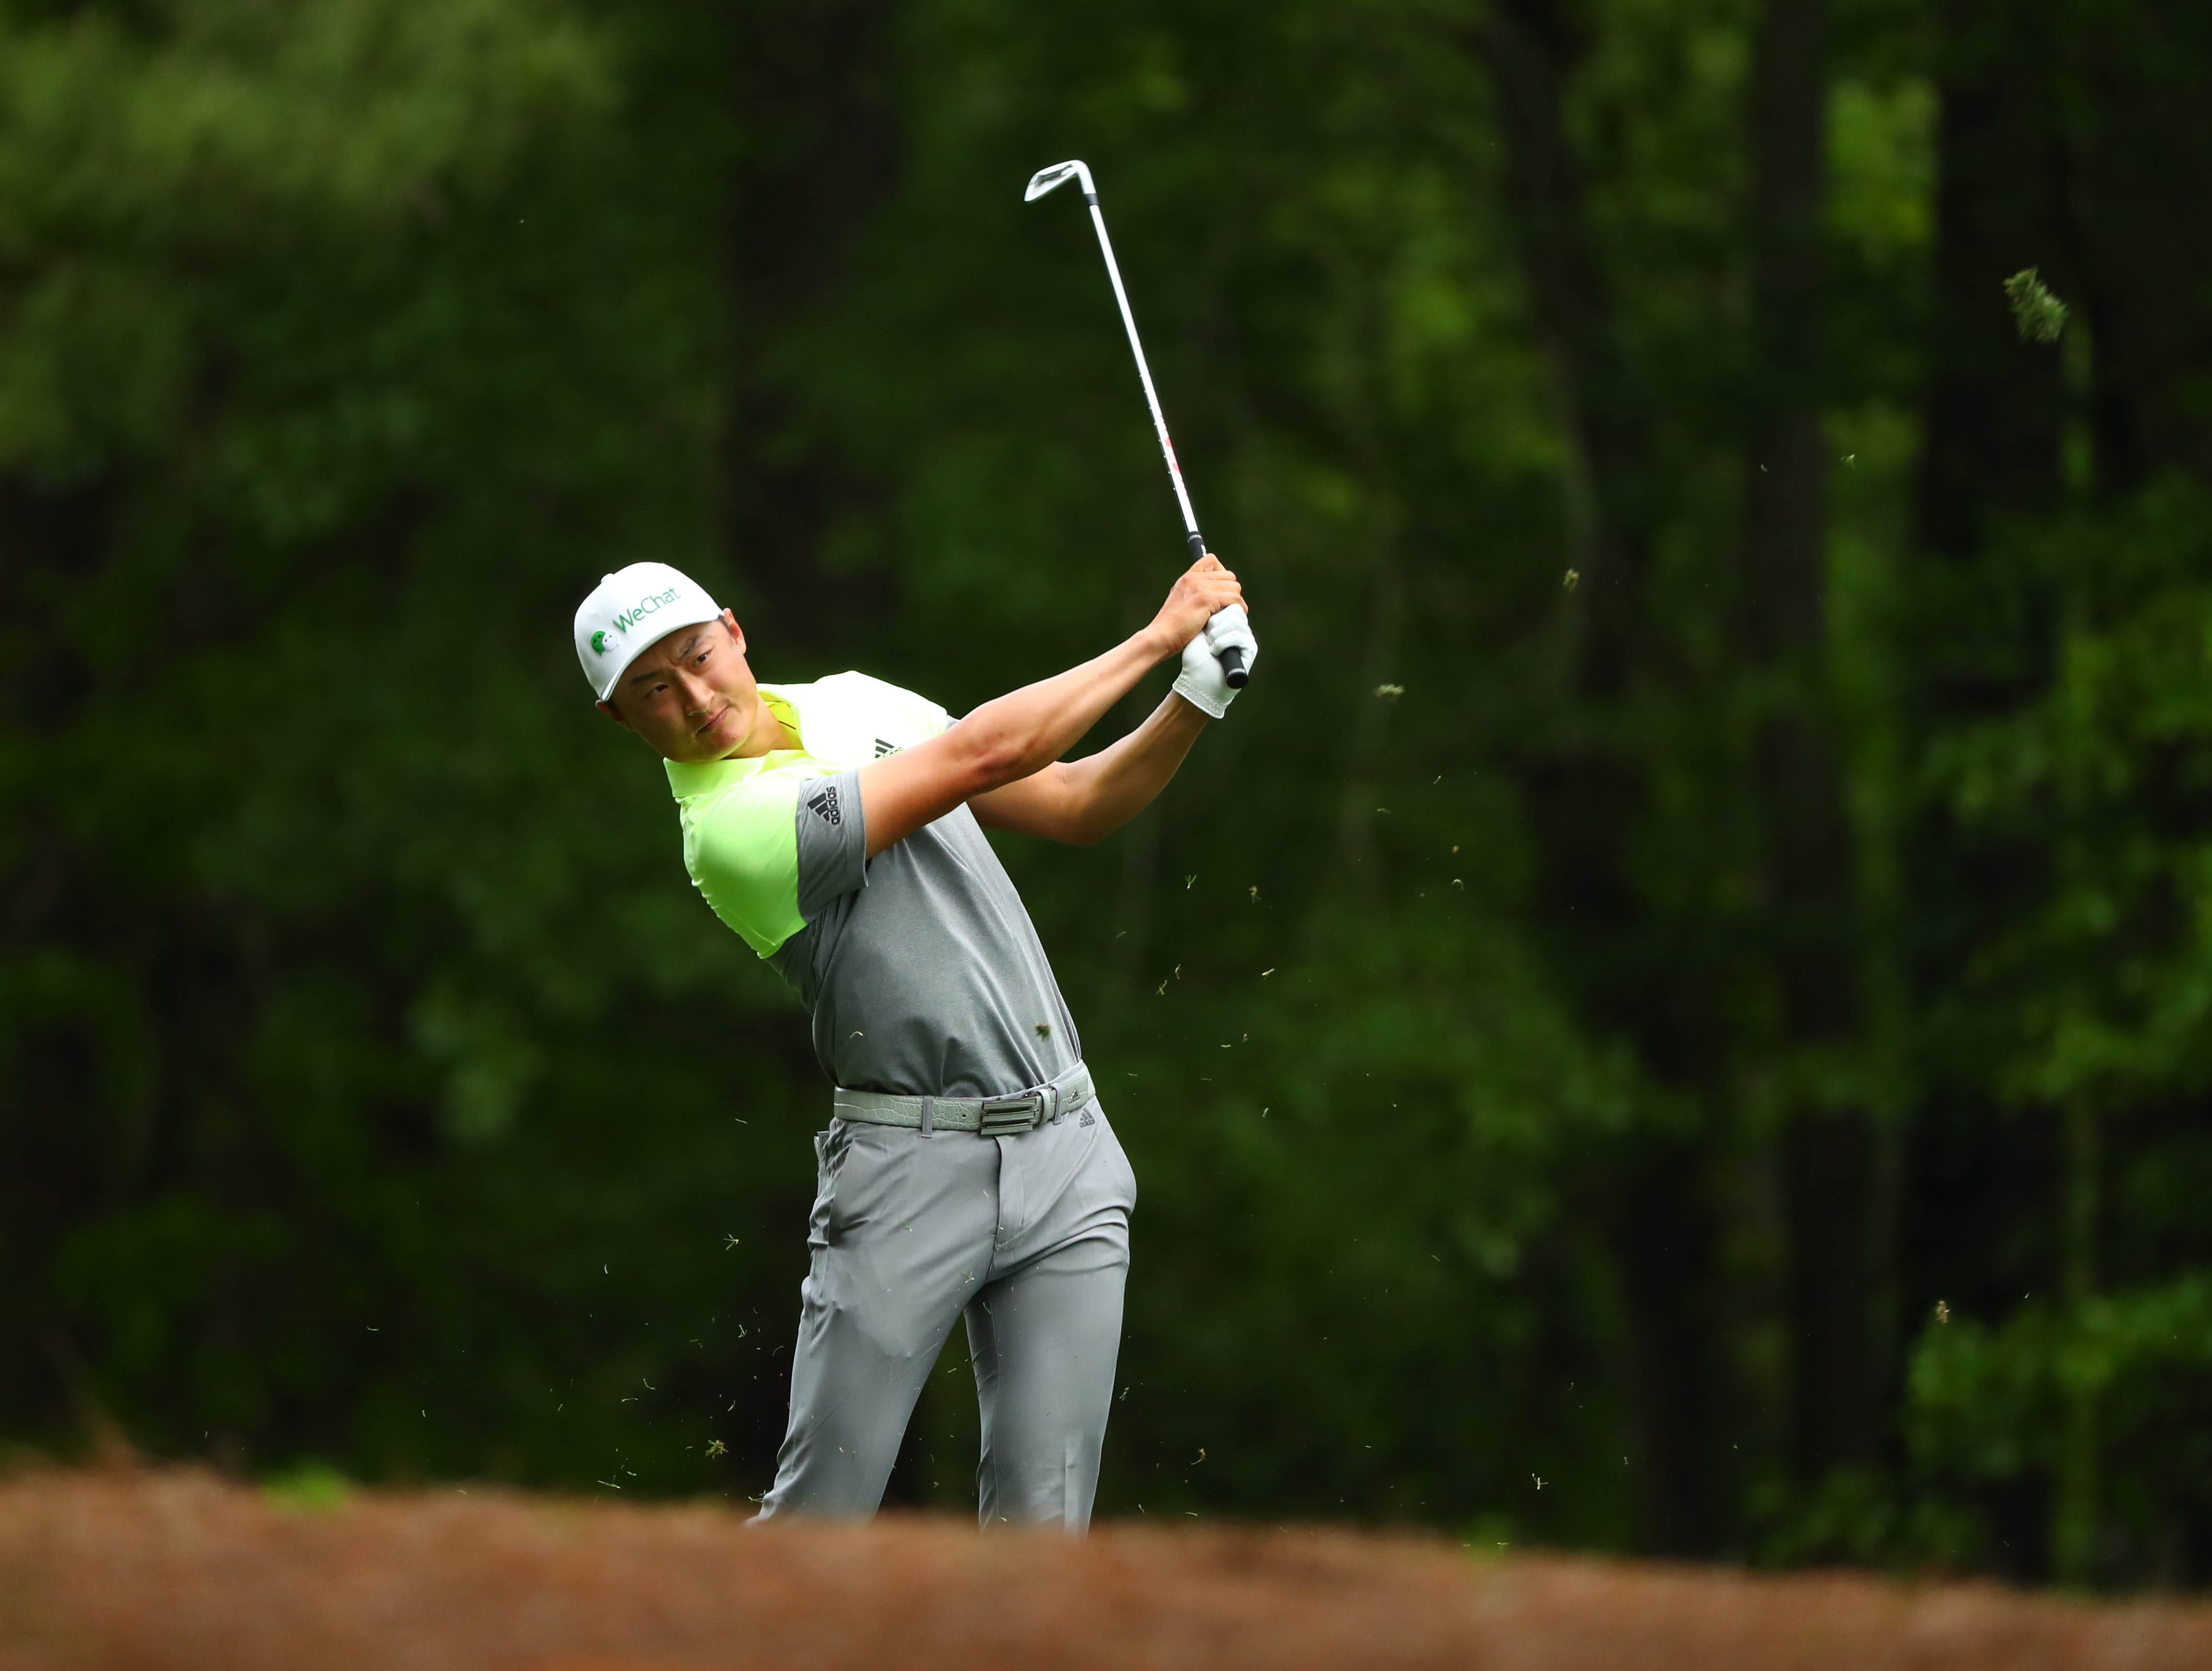 Apr 12, 2019; Augusta, GA, USA; Haotong Li plays a shot on the 11th hole during the second round of The Masters golf tournament at Augusta National Golf Club. Mandatory Credit: Rob Schumacher-USA TODAY Sports